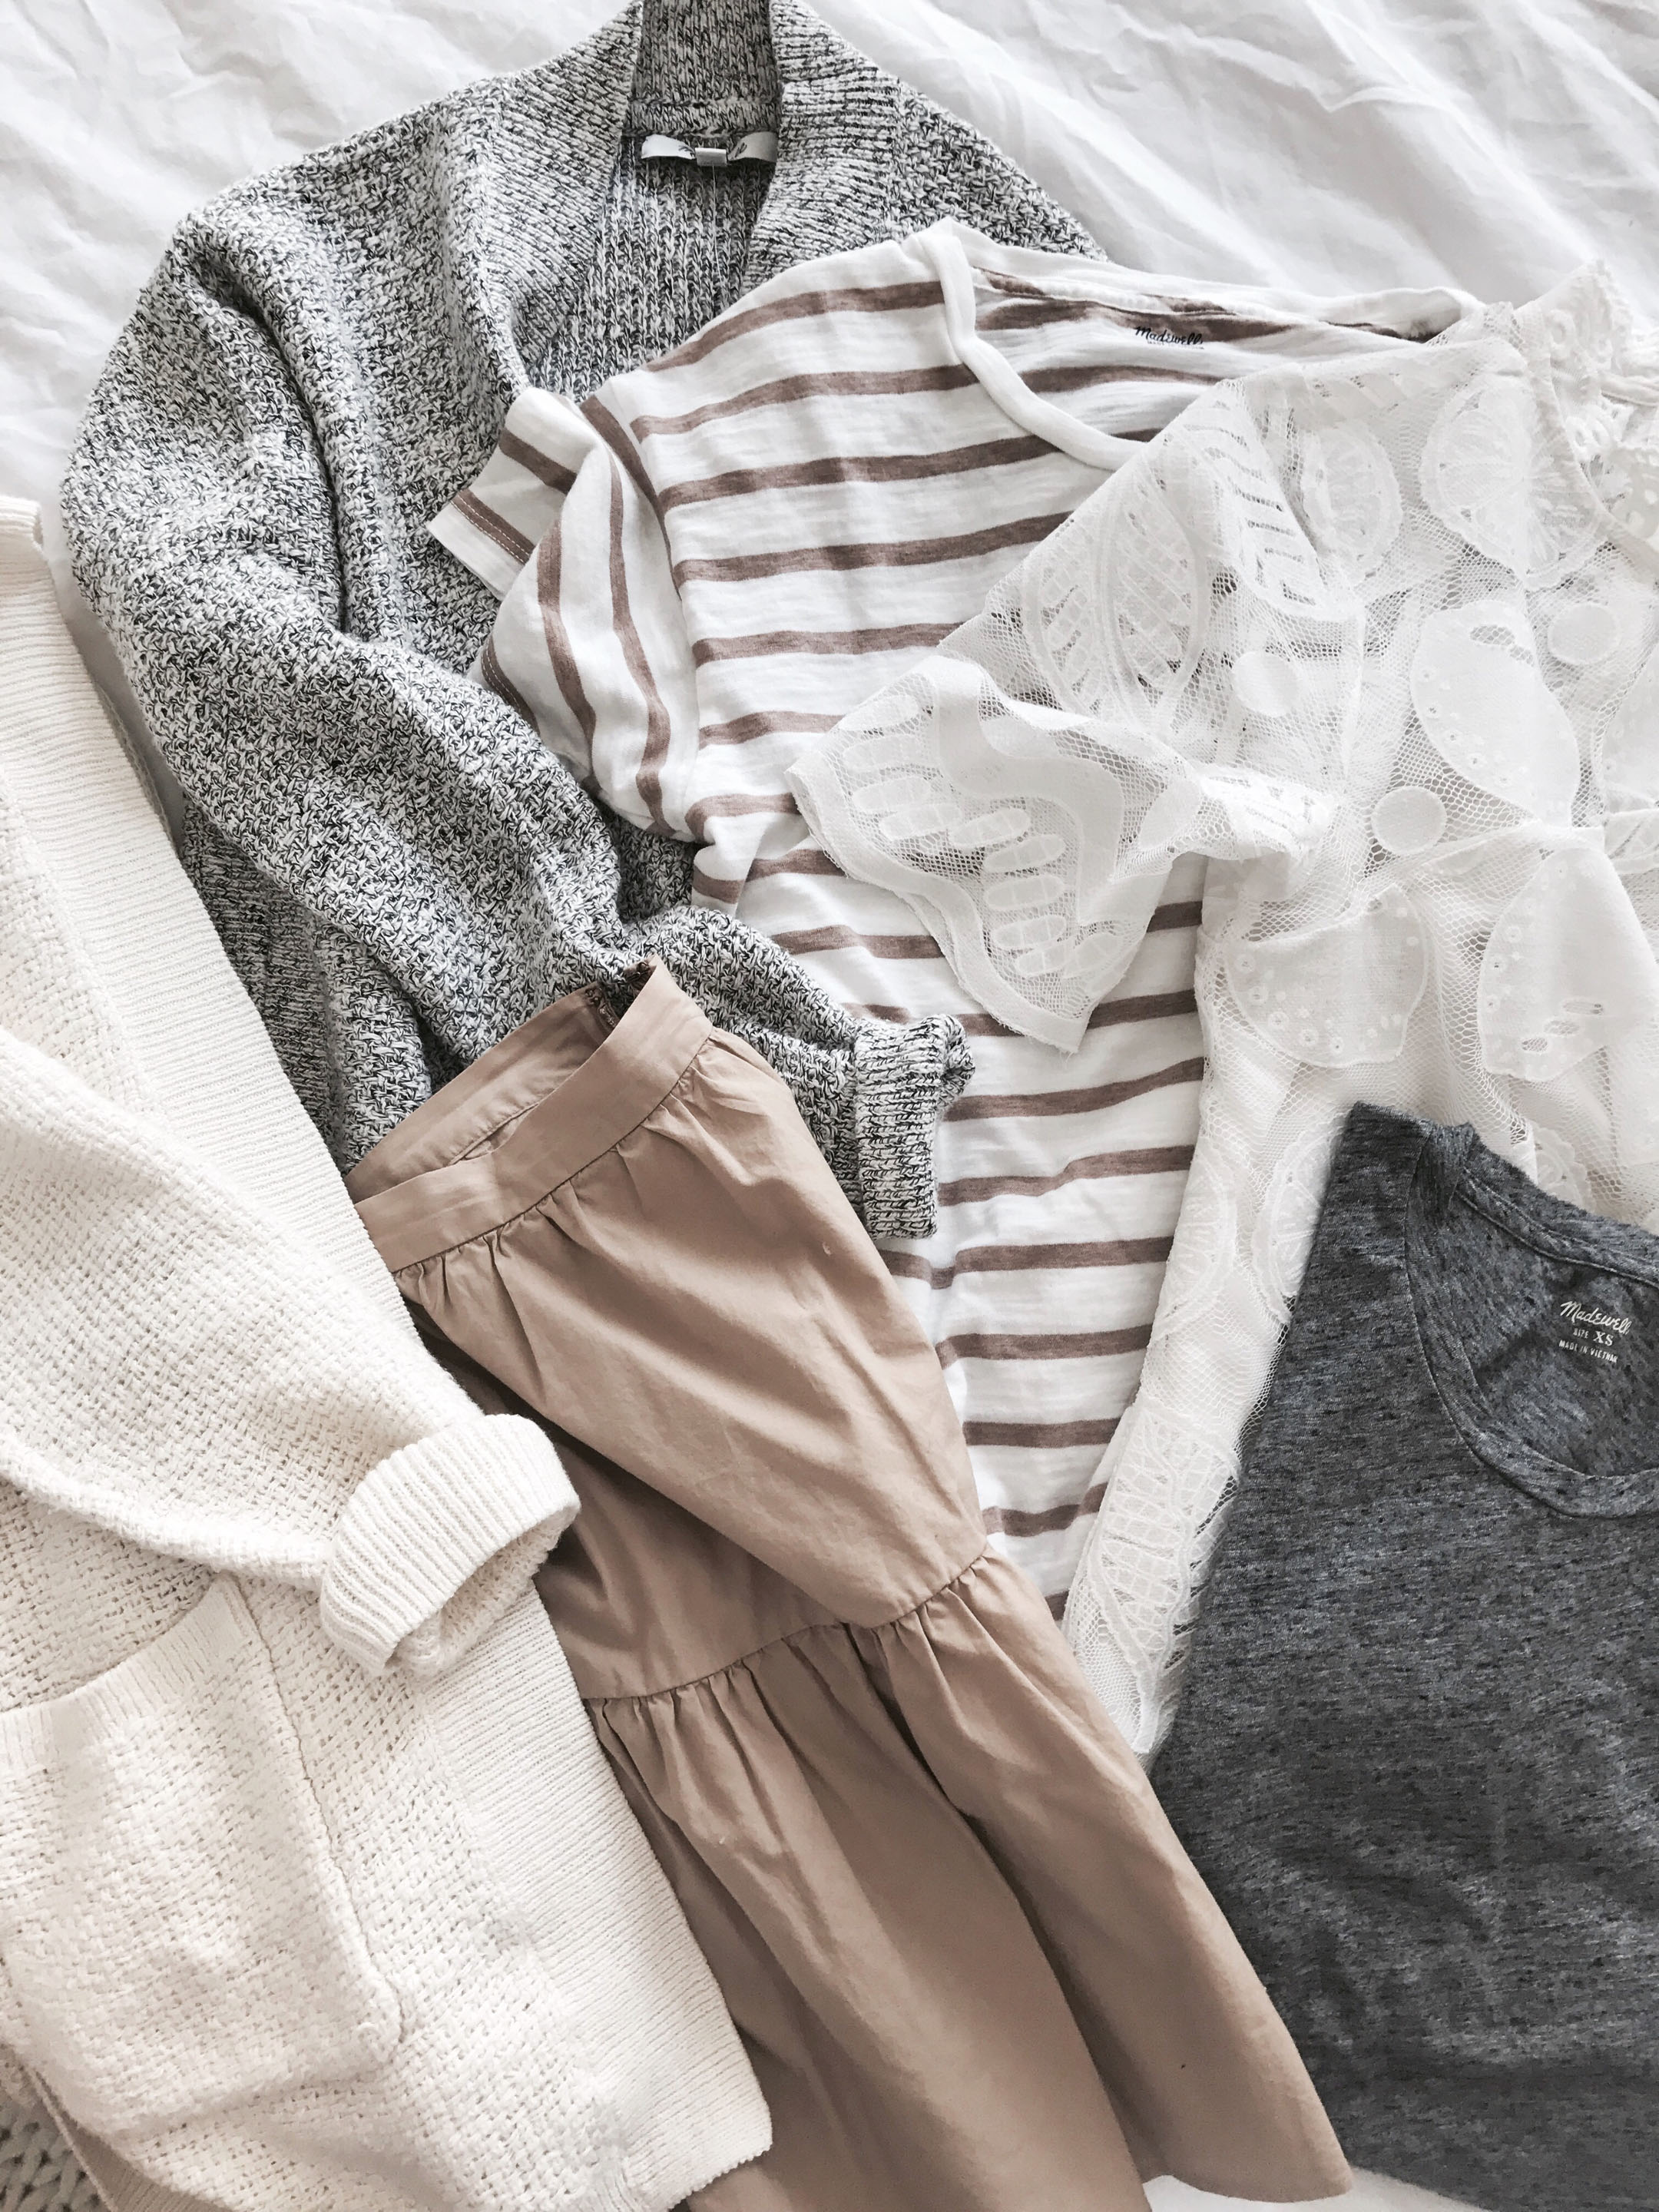 Madewell neutral tones